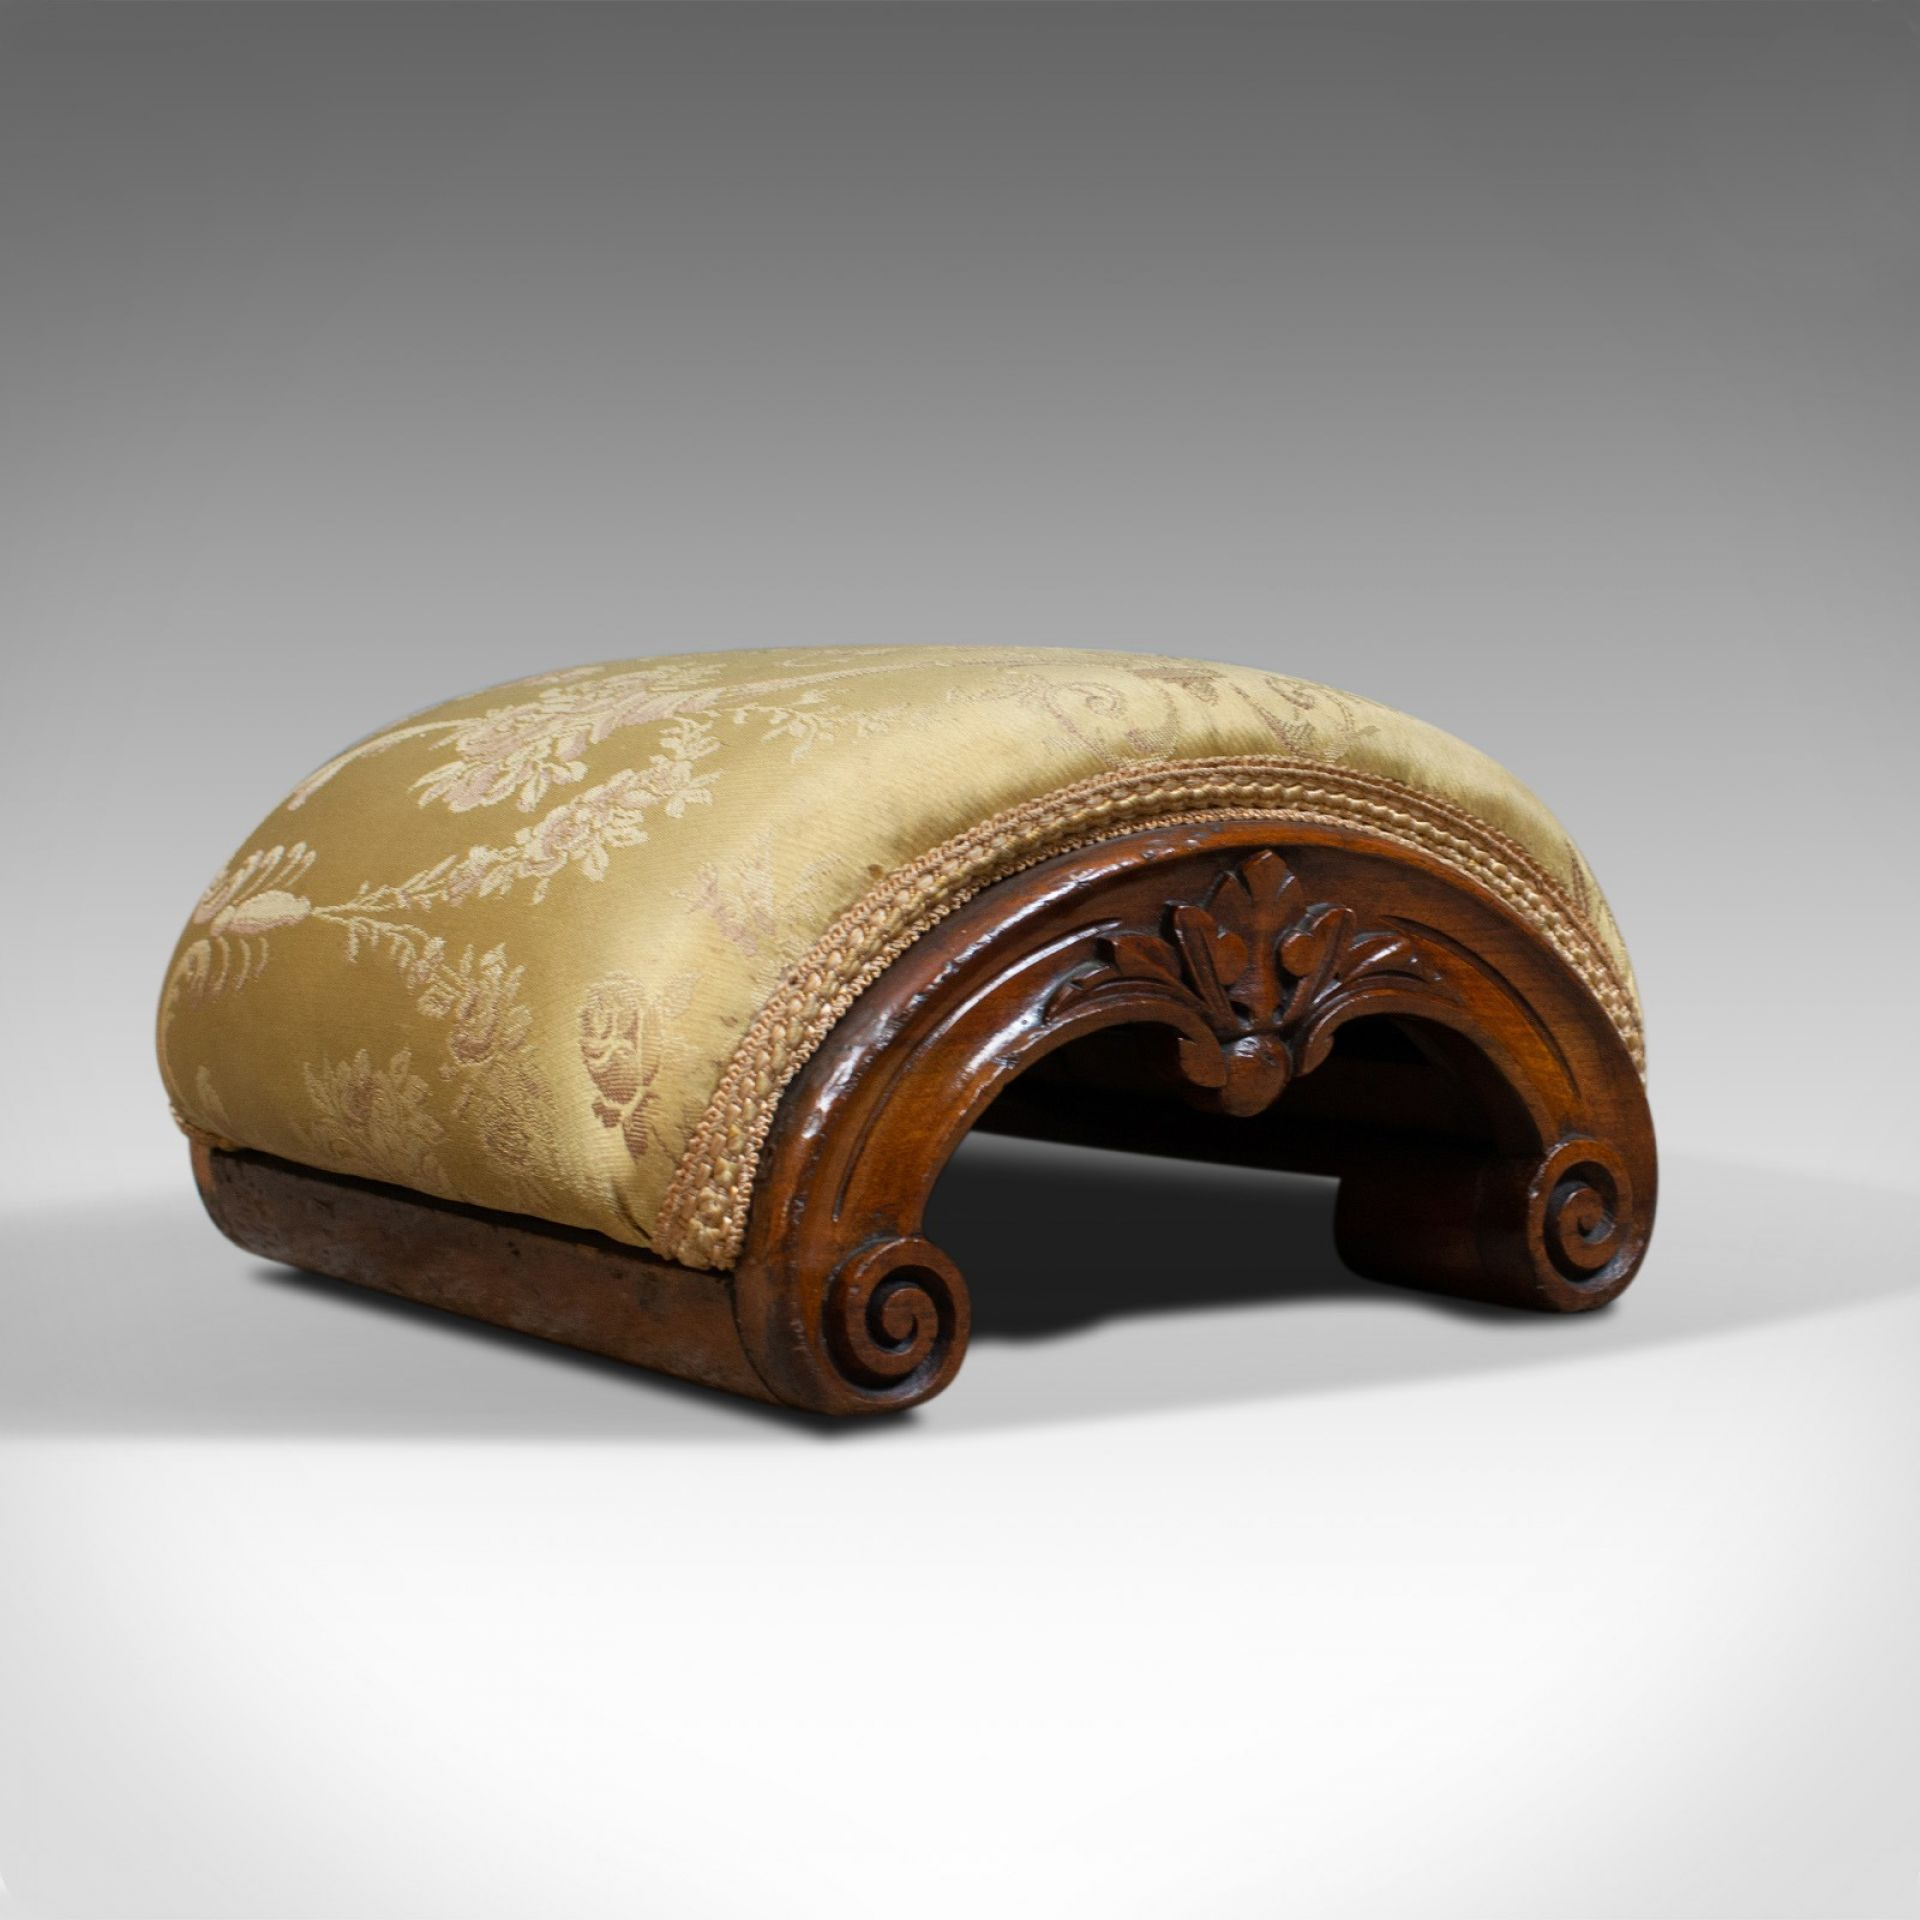 Antique Footstool, English, Victorian, Dome-Topped, Walnut, Carriage Stool c1840